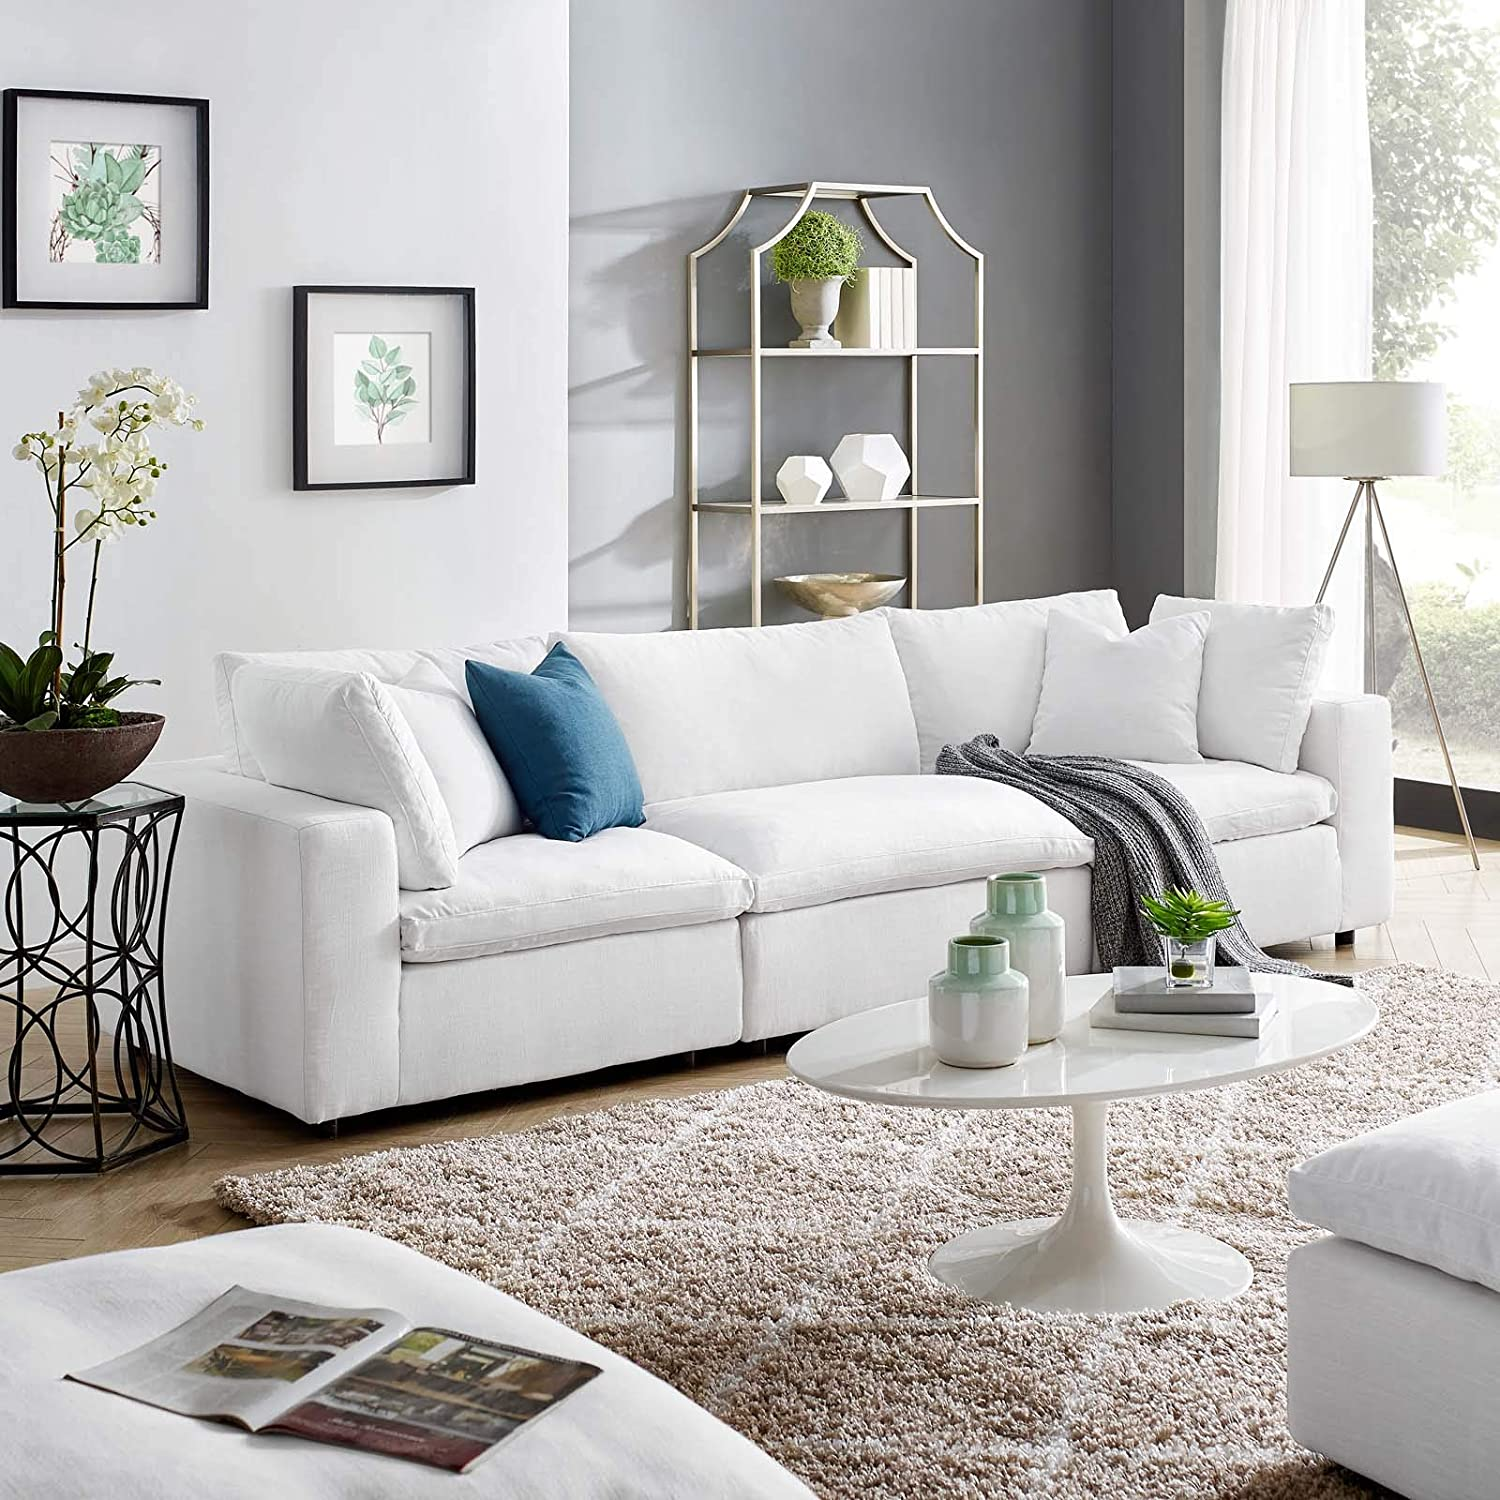 Modway Down Filled Overstuffed 3 Piece Sectional Sofa Set Fabric White Armless Two Corner Chairs Amazon Co Uk Kitchen Home